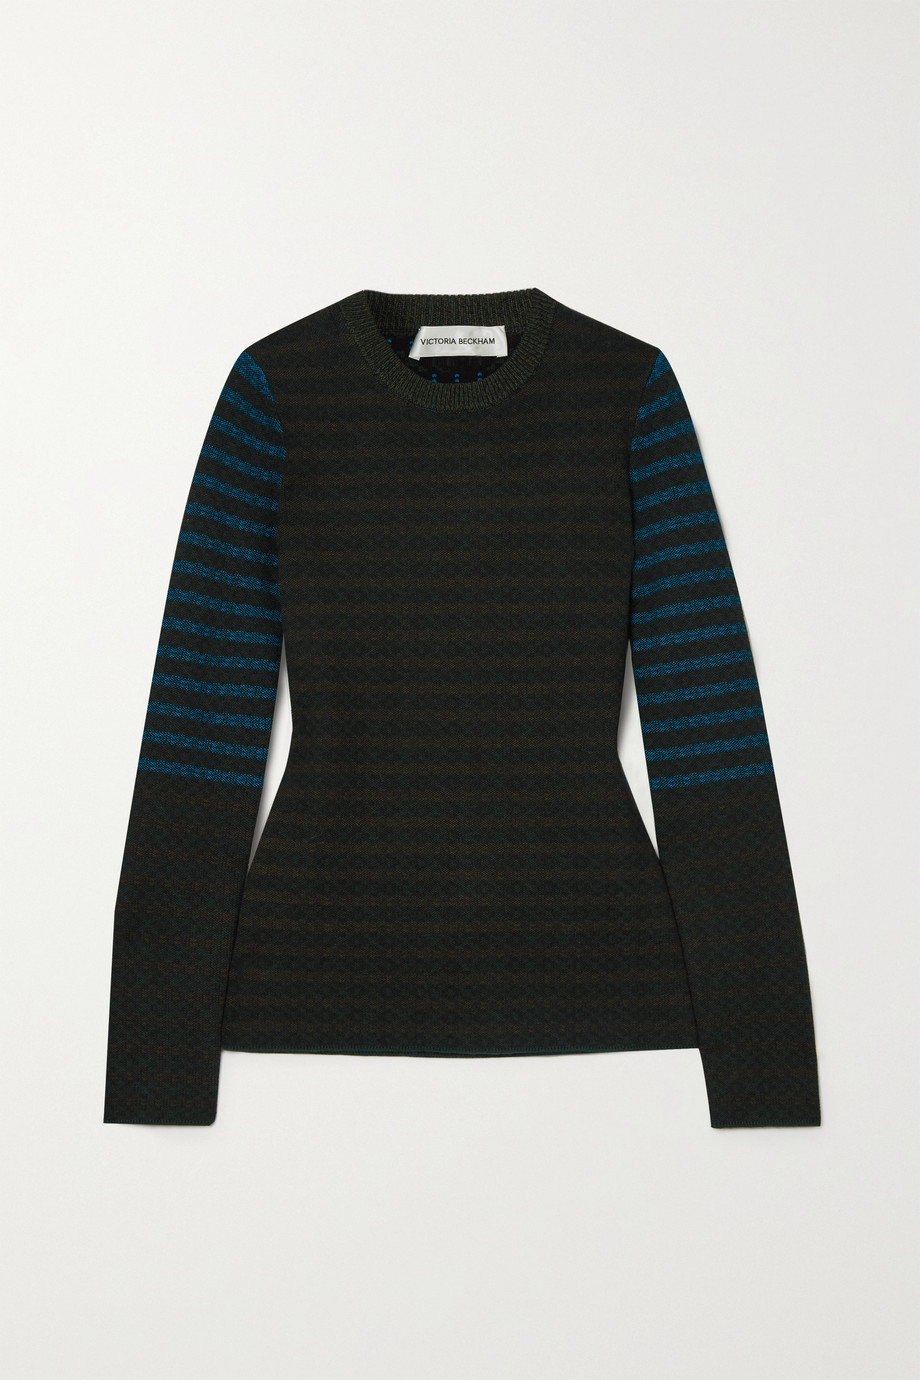 Victoria Beckham Cotton jacquard-knit sweater